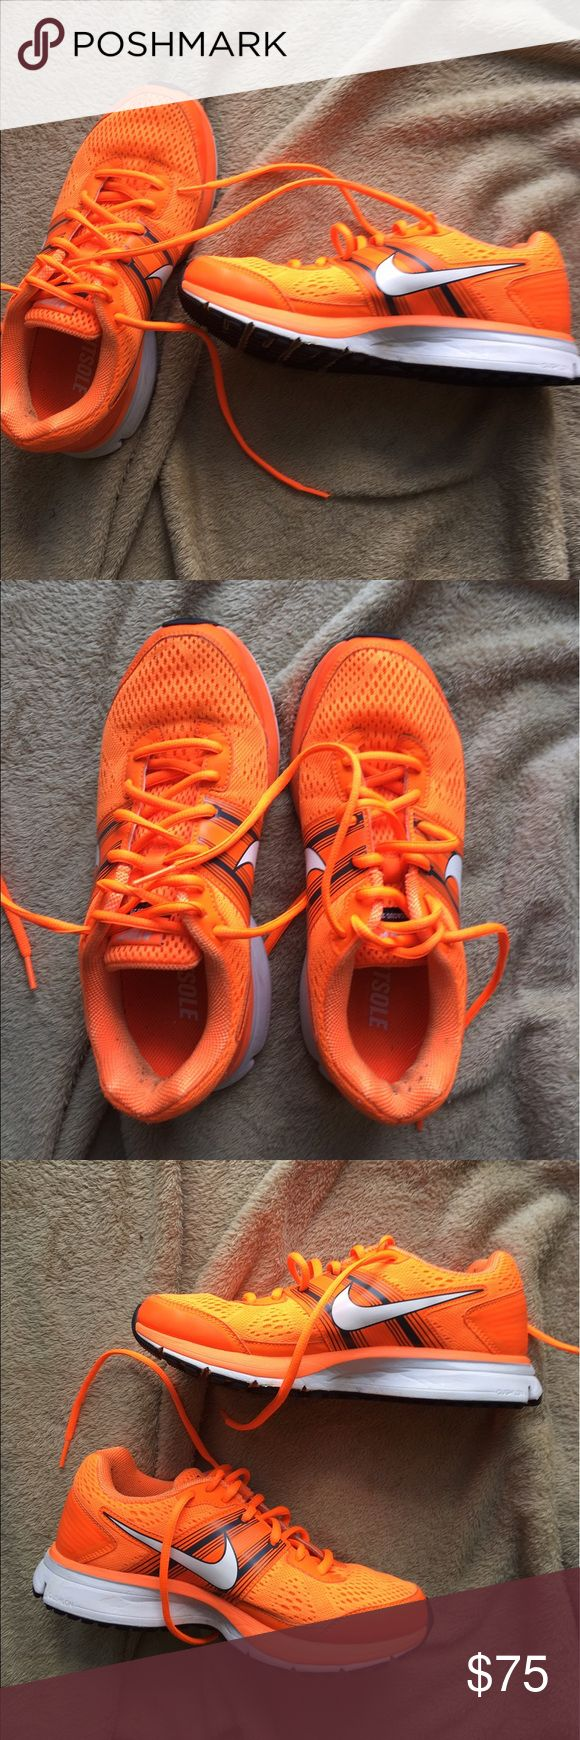 Orange Nike Pegasus shoes in 7.5! These have probably been worn less than three times, as they're too small for me. They were just so cute I had to get them, but they just don't fit sadly.   🌙If it is listed it is available ⭐️No trades 💫Authentic  ☀️No Modeling 🌒MAJOR BUNDLE DISCOUNTS Nike Shoes Athletic Shoes